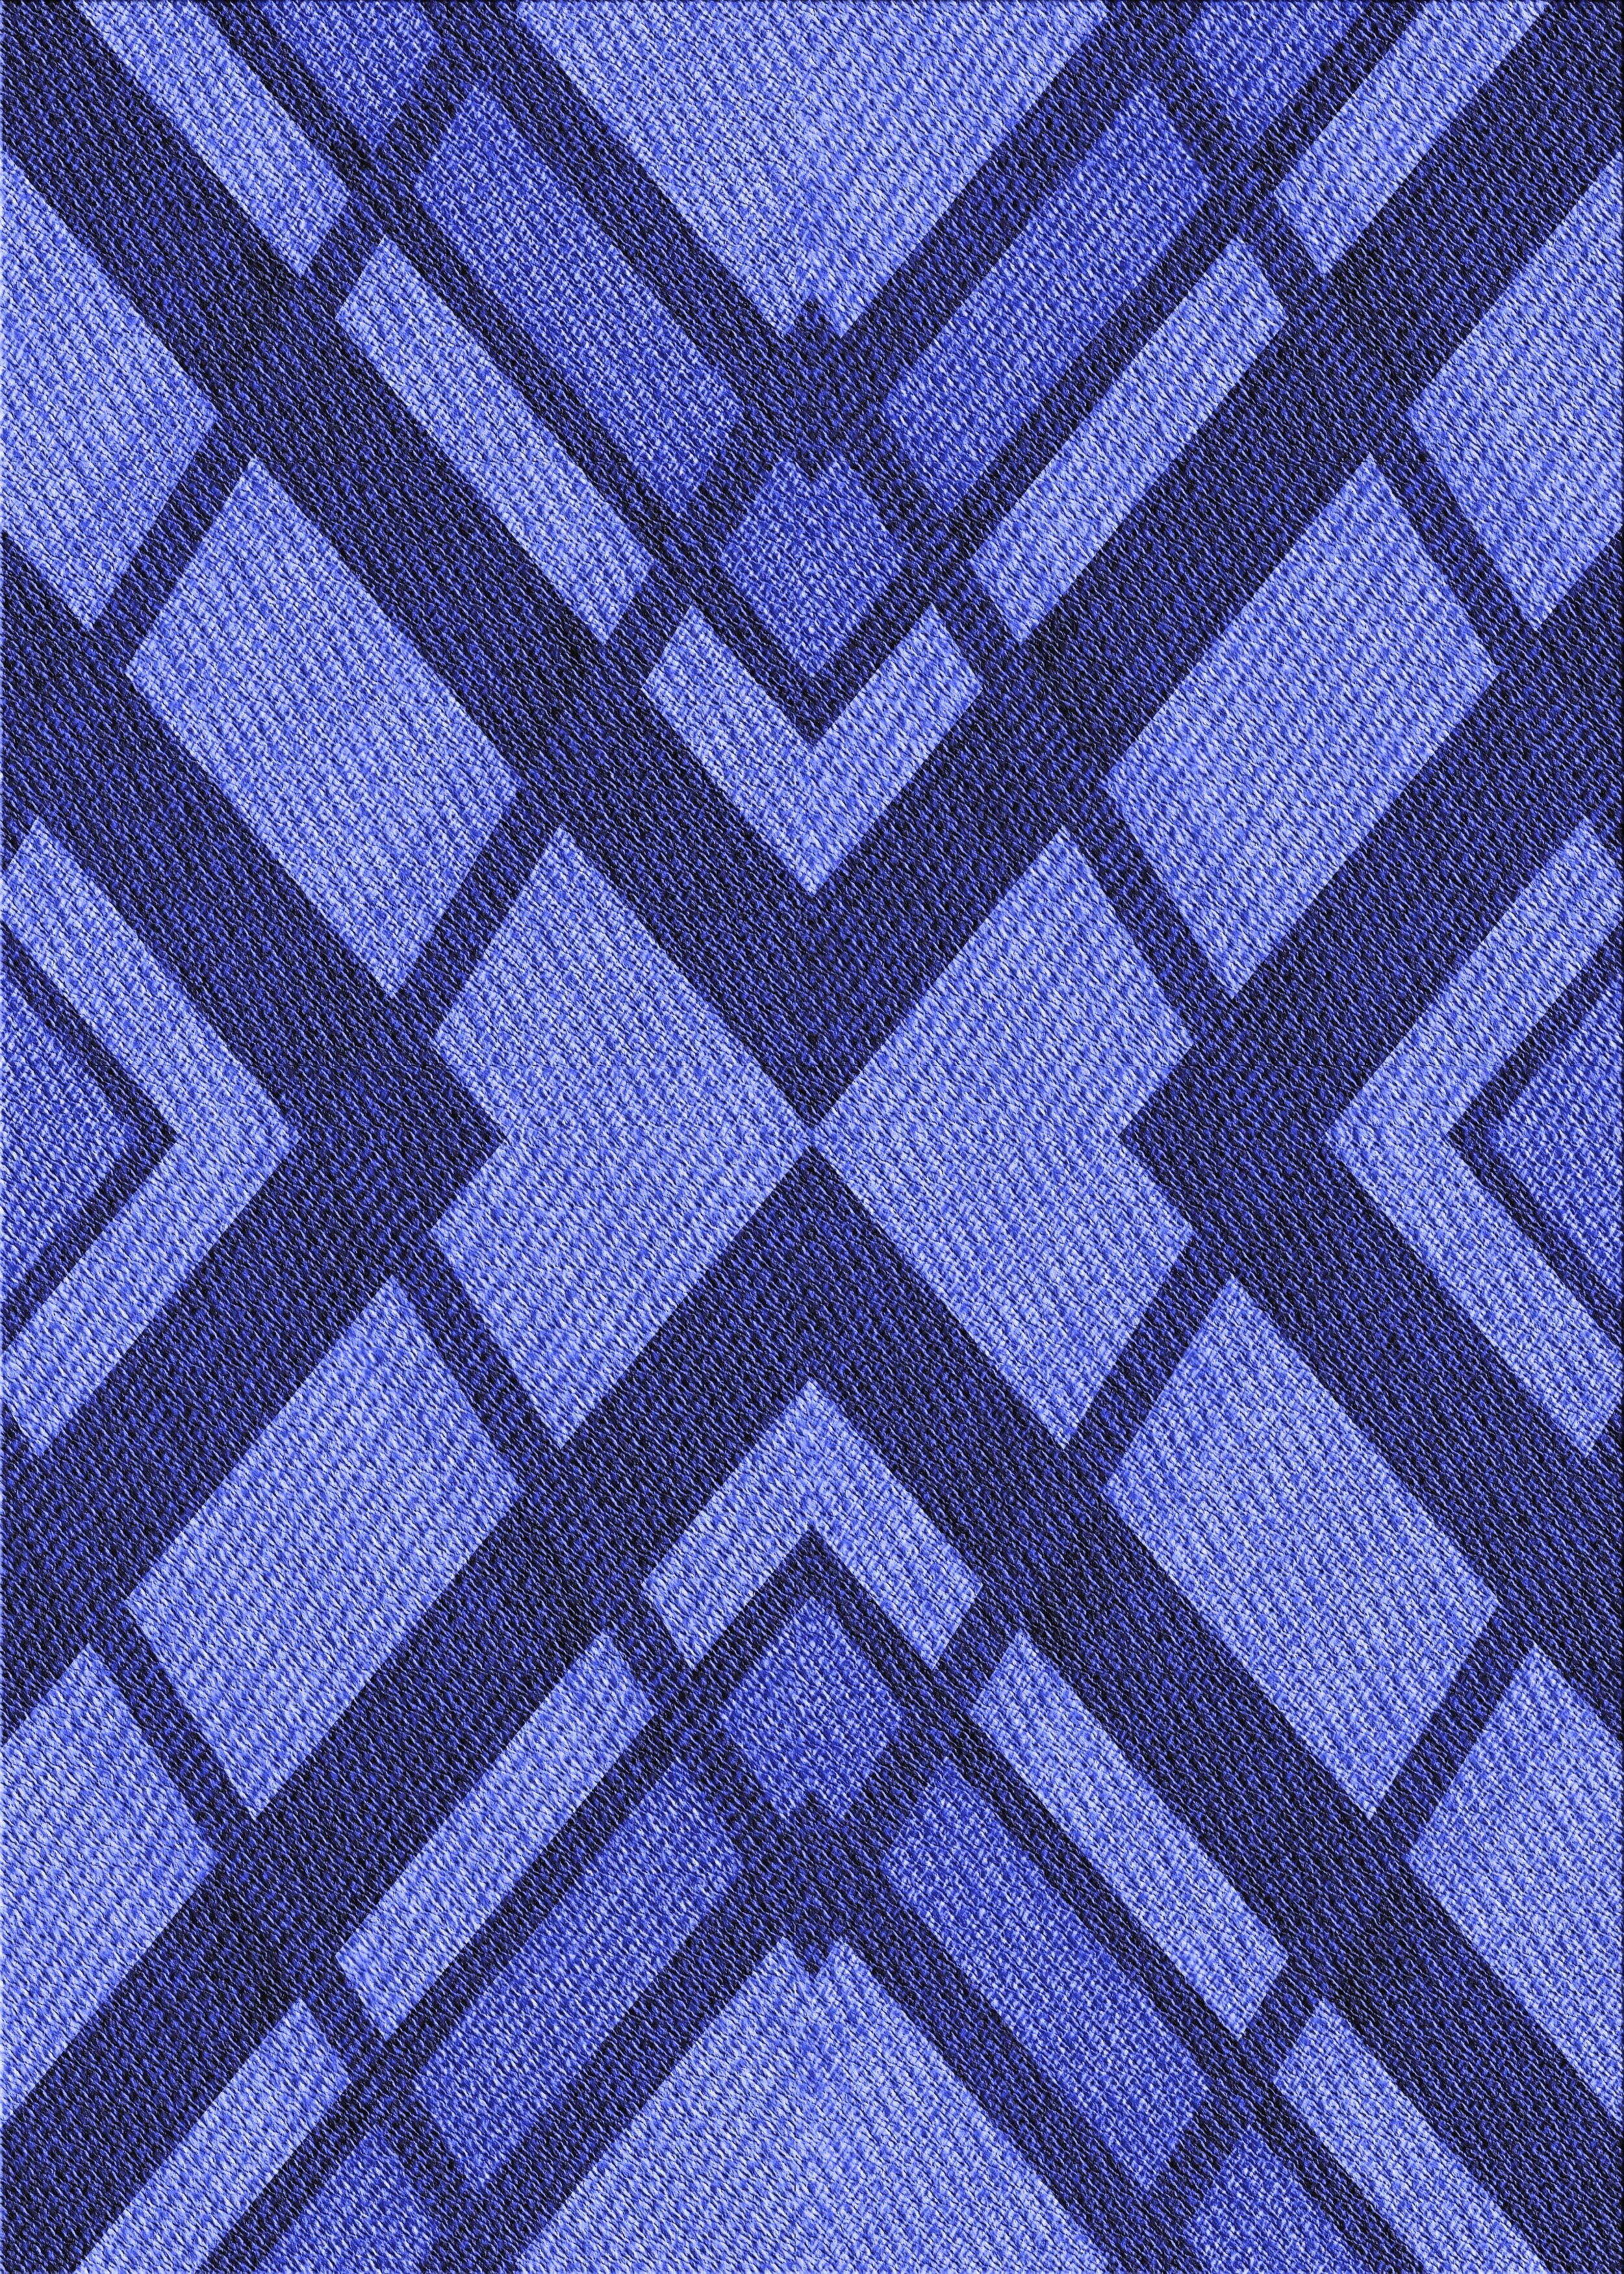 East Urban Home Kilgore Geometric Wool Blue Area Rug Wayfair